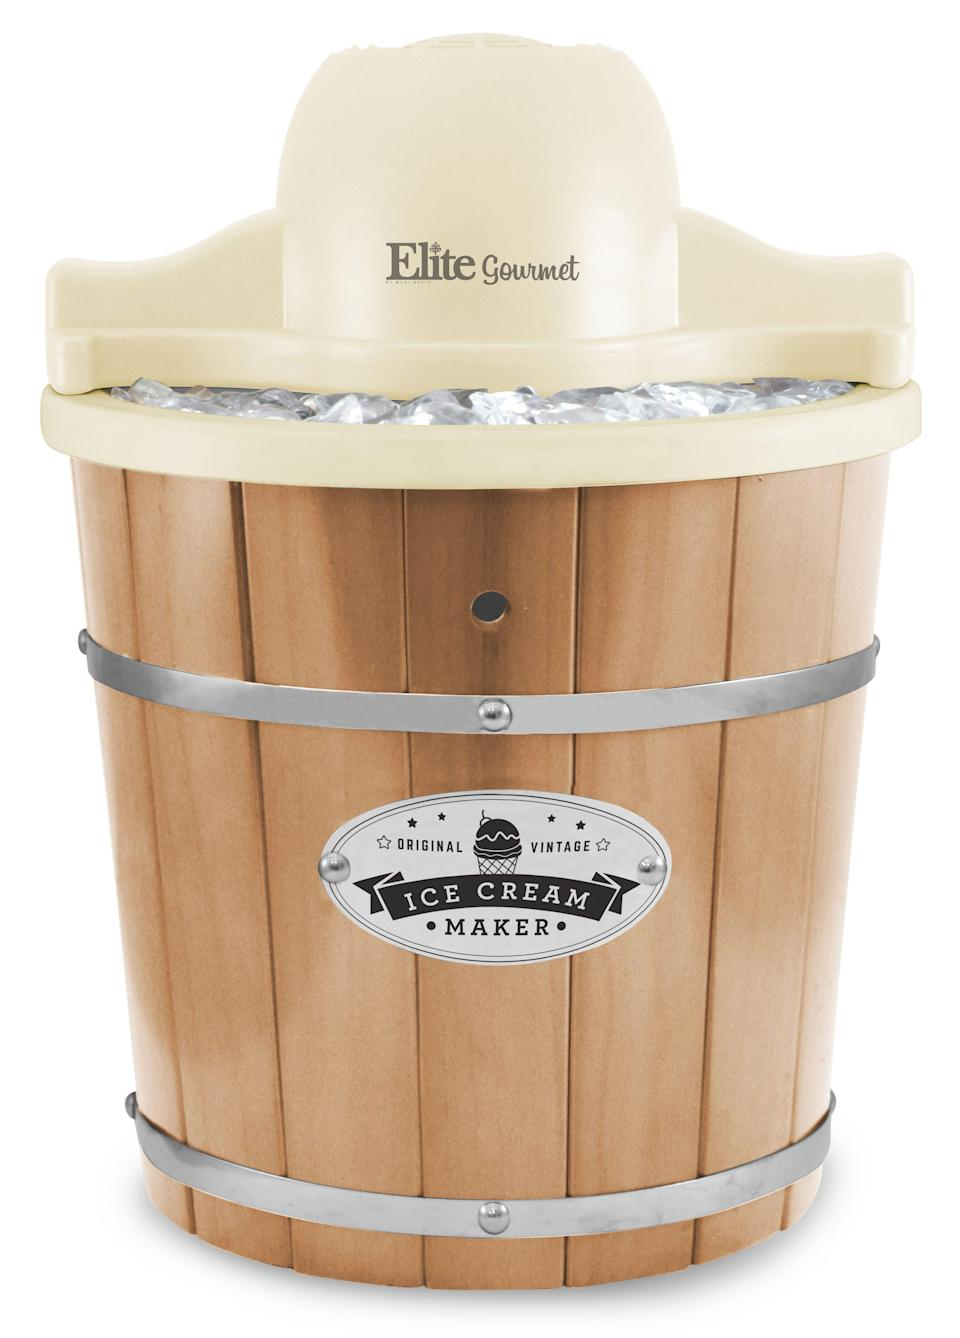 """<p><strong>Elite Gourmet</strong></p><p>walmart.com</p><p><strong>$81.24</strong></p><p><a href=""""https://go.redirectingat.com?id=74968X1596630&url=https%3A%2F%2Fwww.walmart.com%2Fip%2F324684230&sref=https%3A%2F%2Fwww.thepioneerwoman.com%2Ffood-cooking%2Fg36080315%2Fbest-ice-cream-makers%2F"""" rel=""""nofollow noopener"""" target=""""_blank"""" data-ylk=""""slk:Shop Now"""" class=""""link rapid-noclick-resp"""">Shop Now</a></p><p>If you're hosting an ice cream social, this is the pick for you. And even though this is an electric ice cream maker, its design gives a fun nostalgic feel. </p>"""